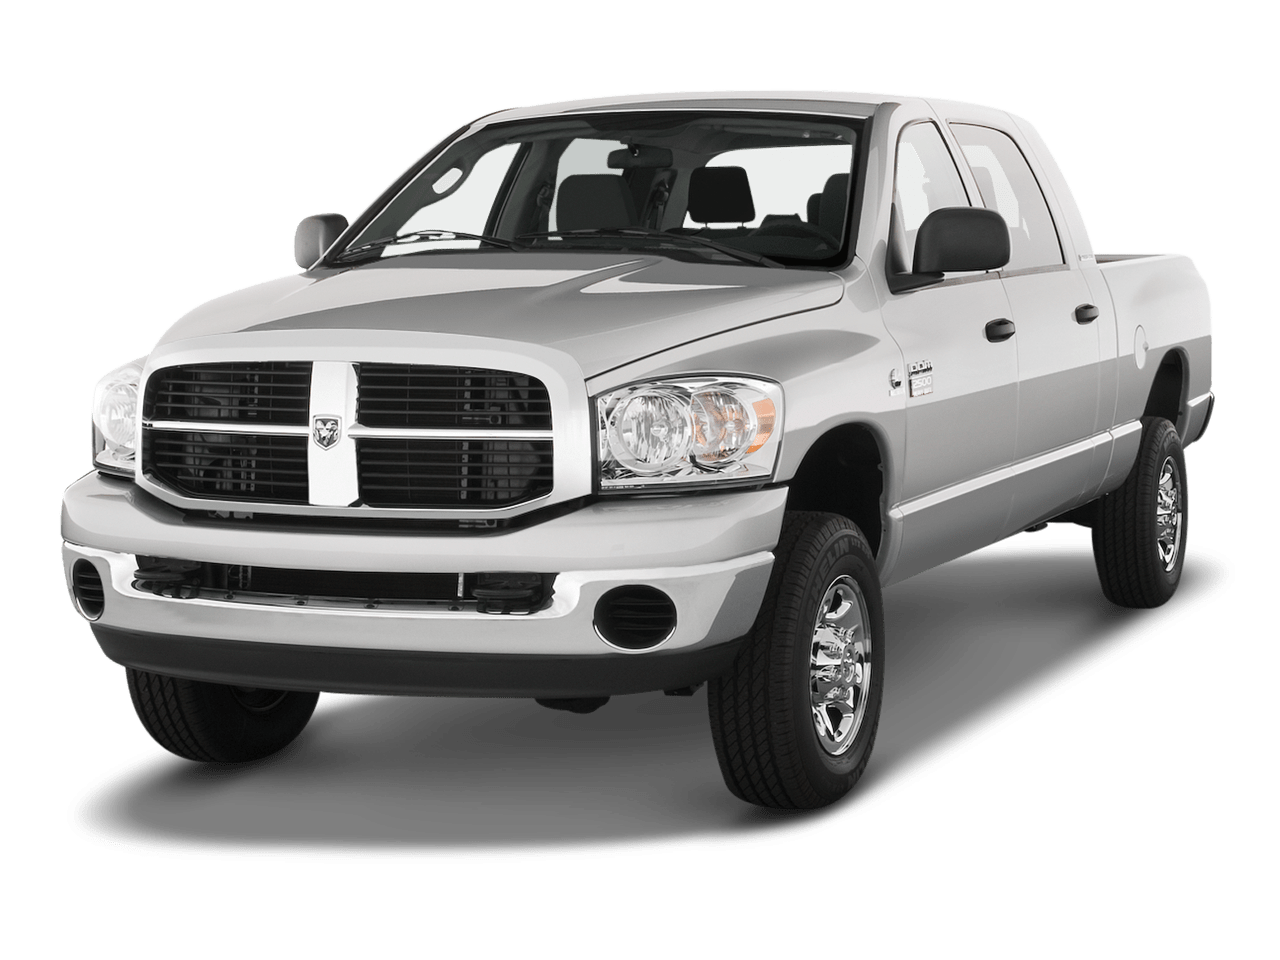 dodge ram 2006 durango radio wiring diagram 2500 reviews research new and used models motor